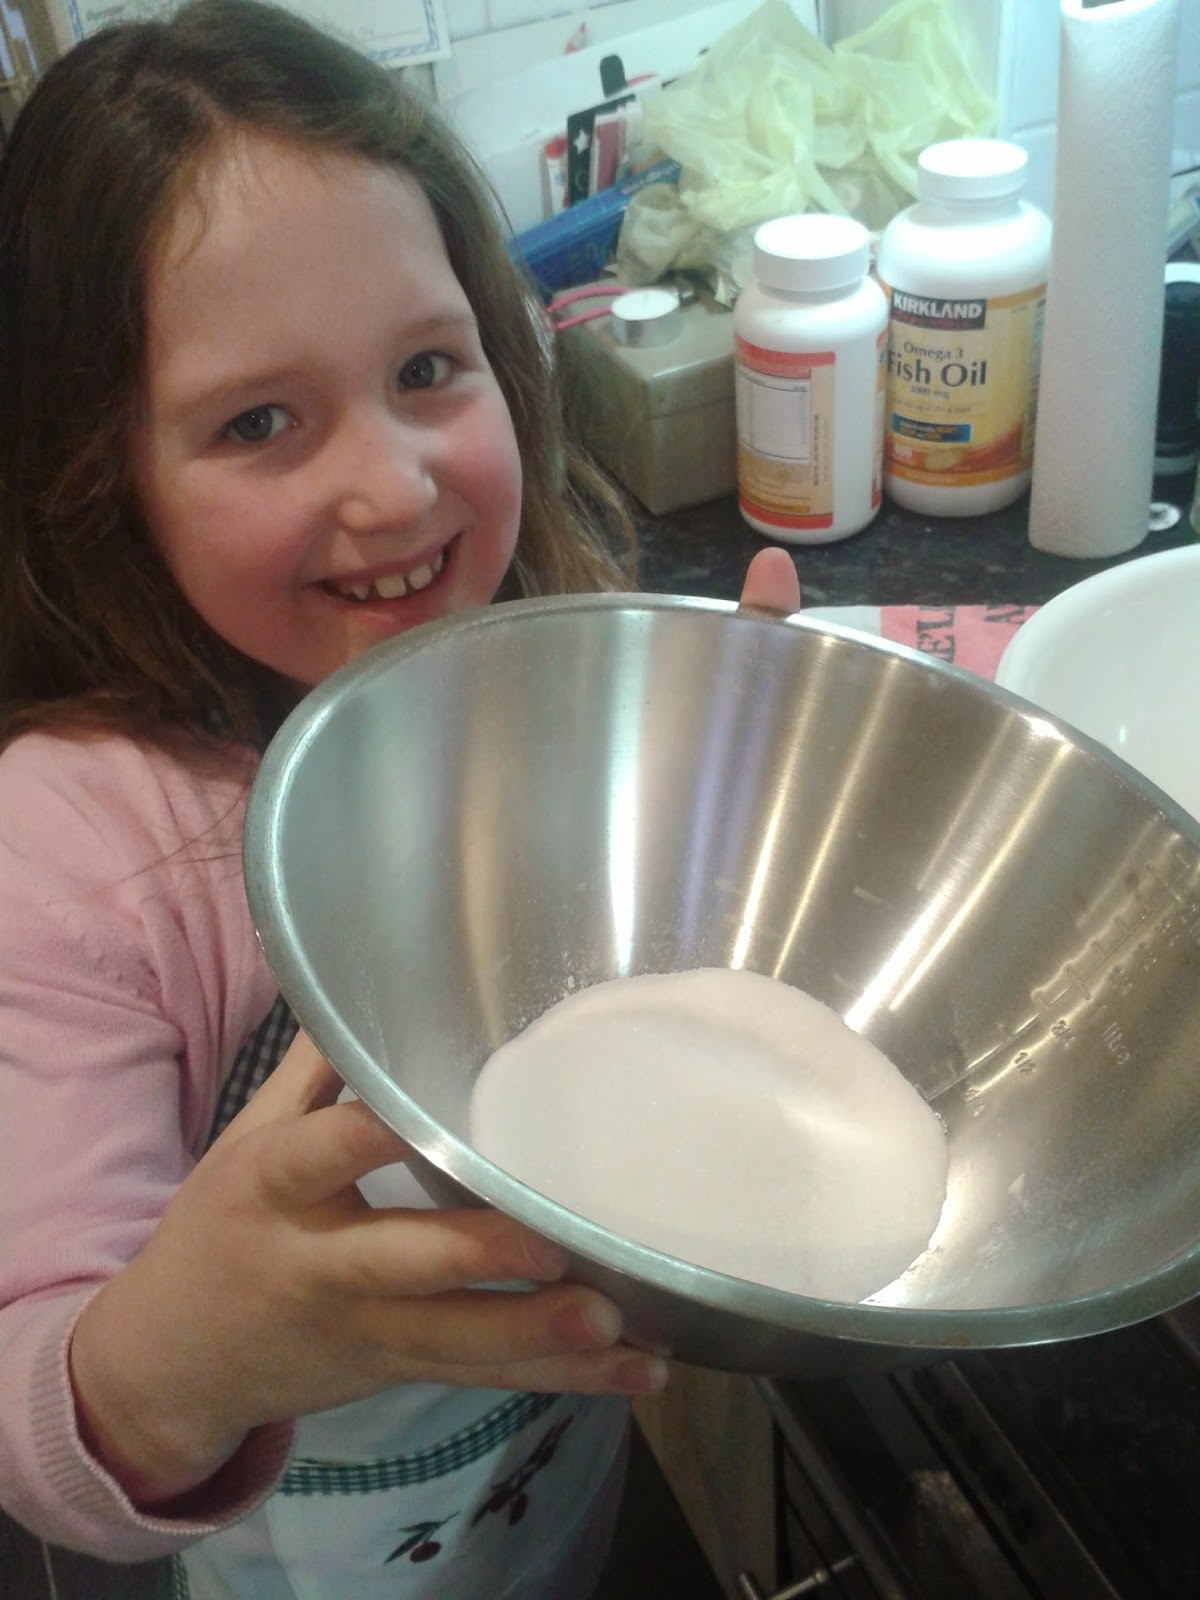 Welsh cakes recipe - Caitlin holding a bowl of sugar